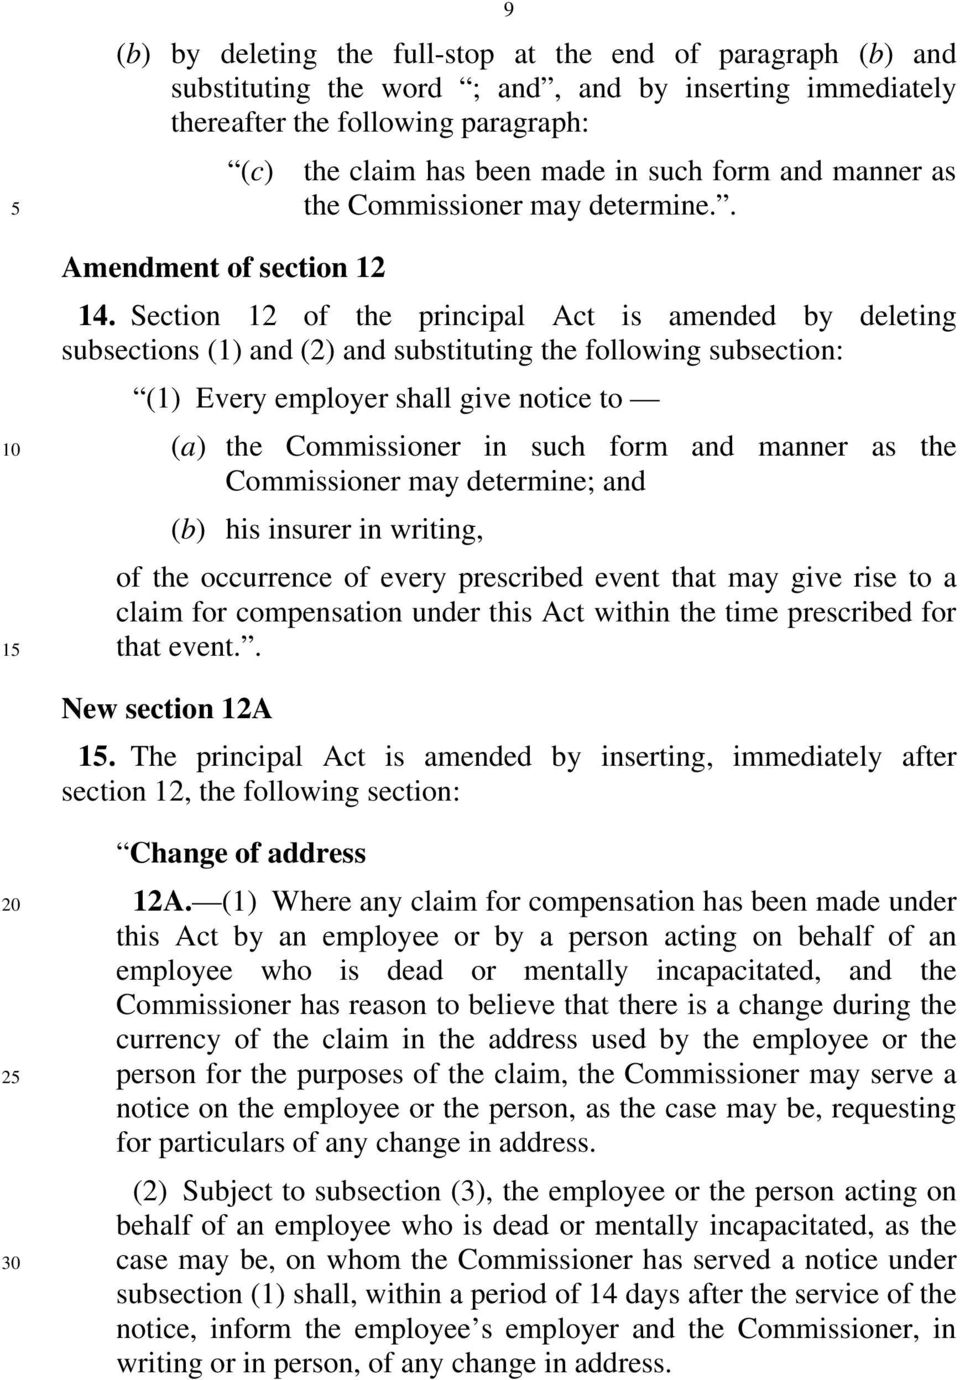 Section 12 of the principal Act is amended by deleting subsections (1) and (2) and substituting the following subsection: (1) Every employer shall give notice to (a) the Commissioner in such form and